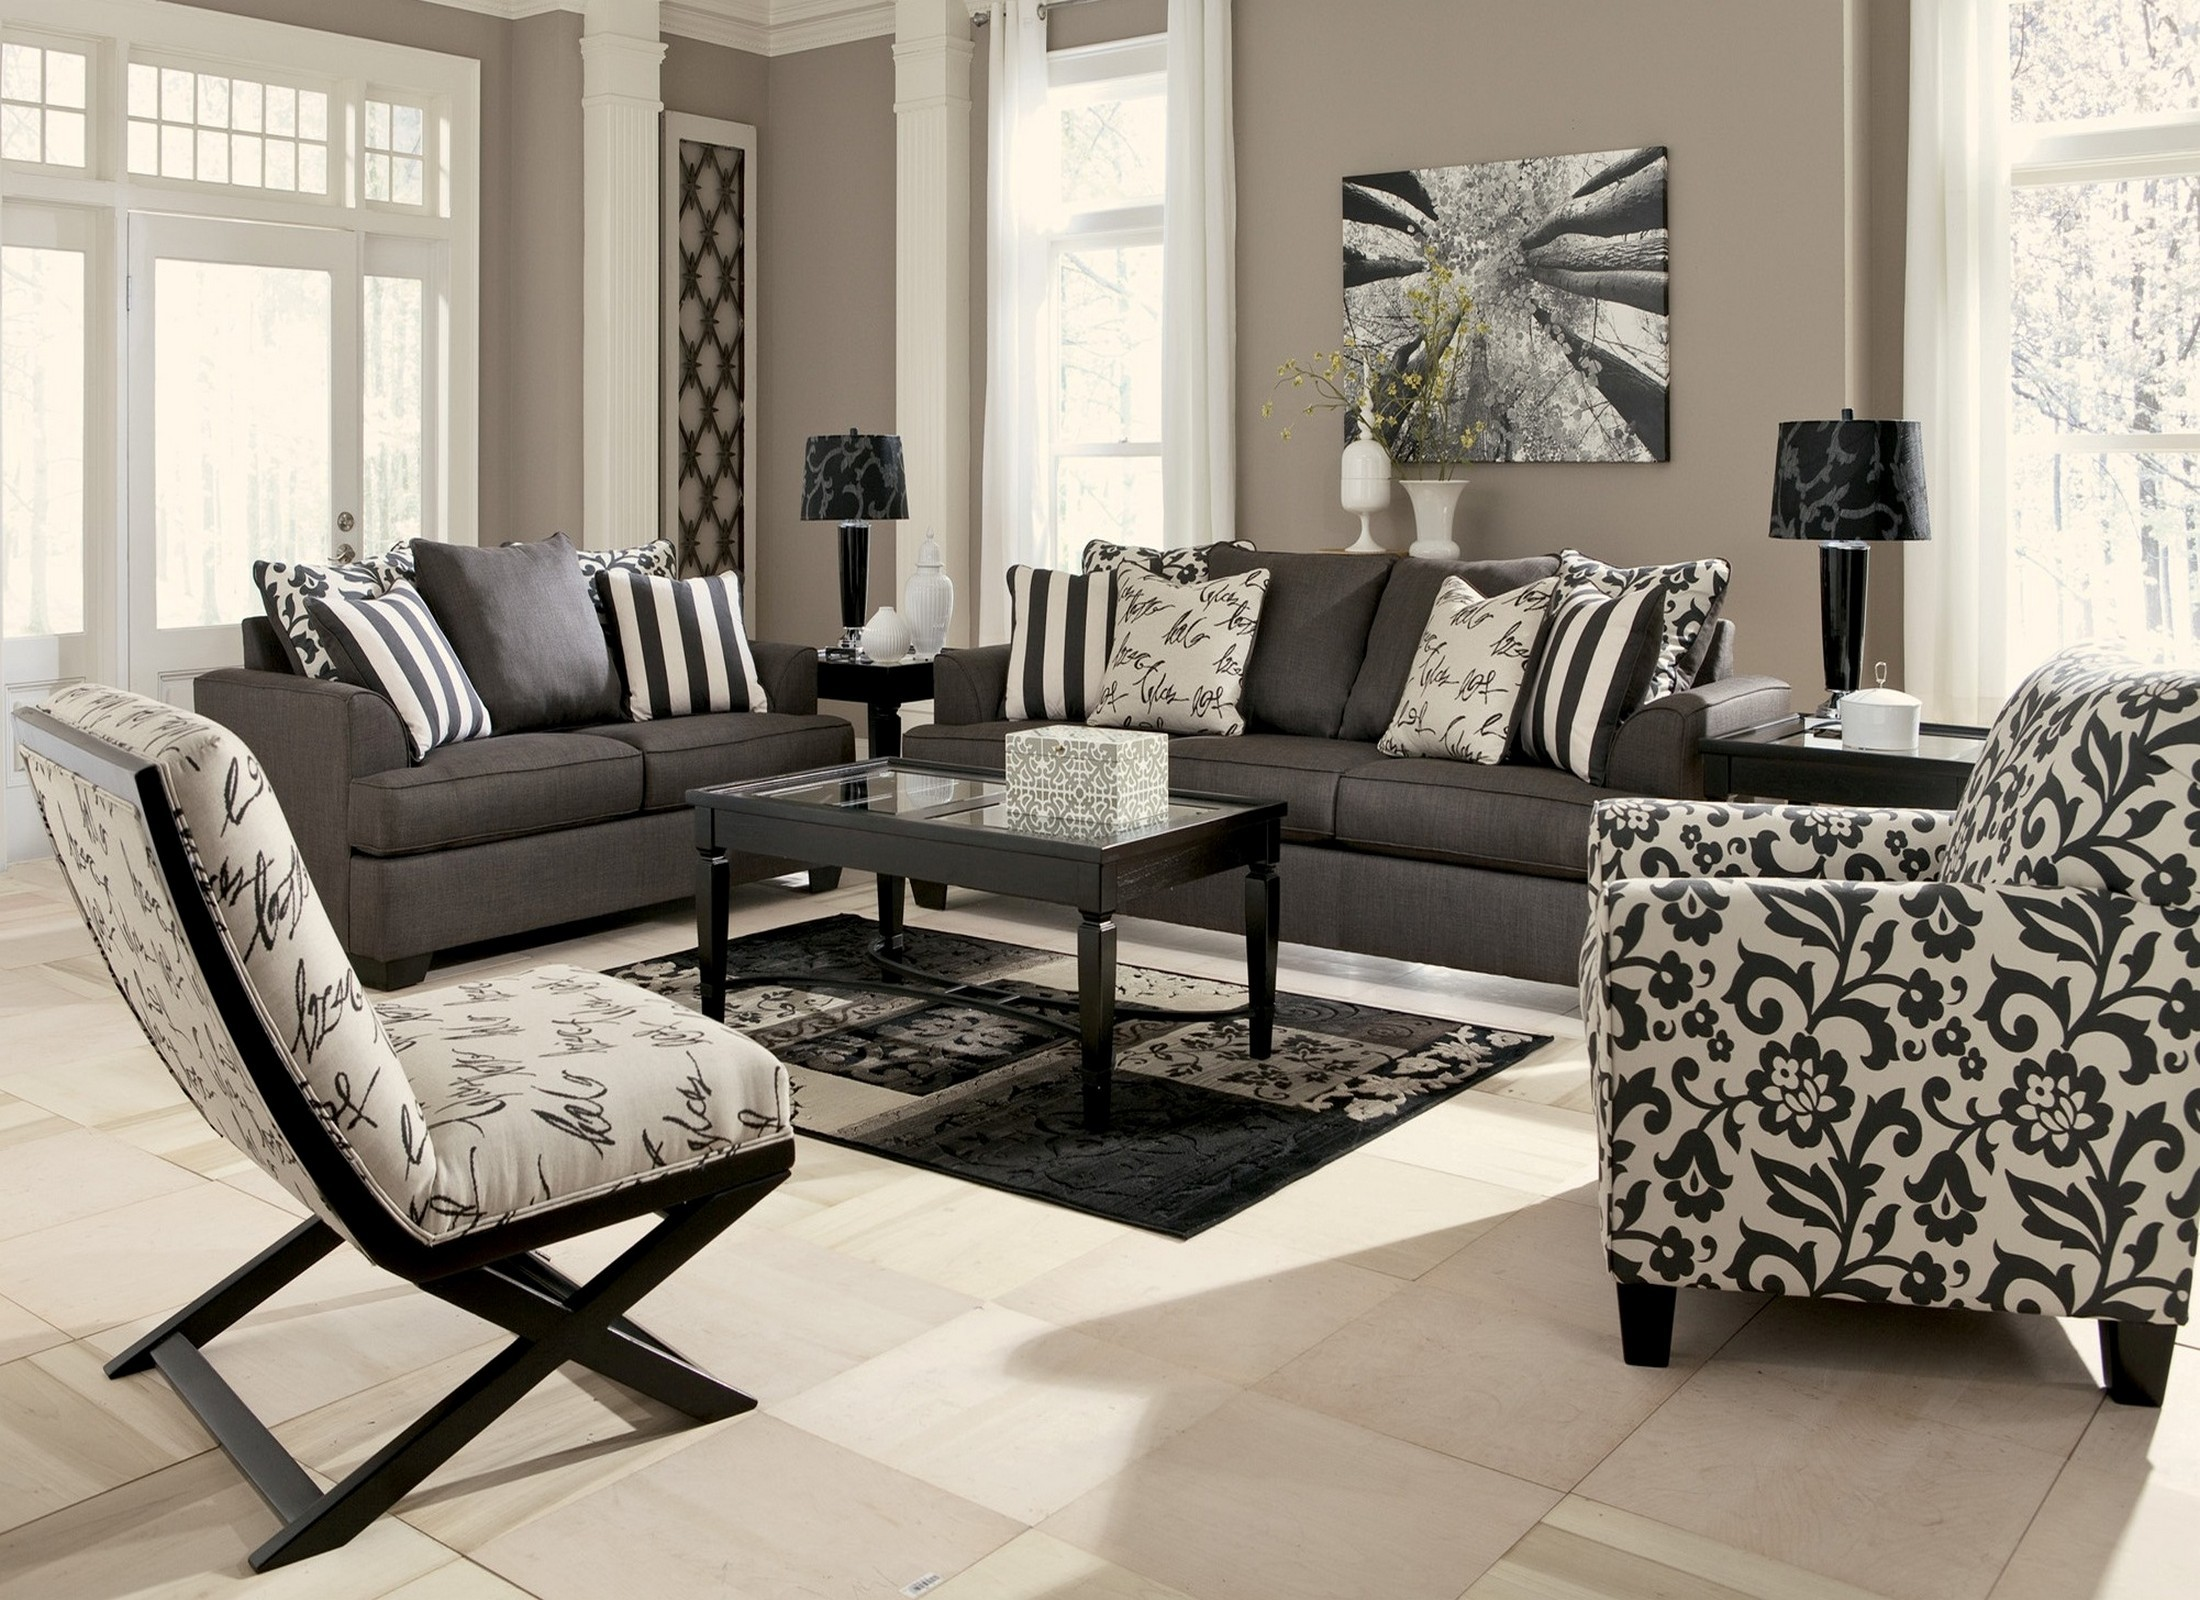 Living Room Furniture: Levon Charcoal Living Room Set From Ashley (73403